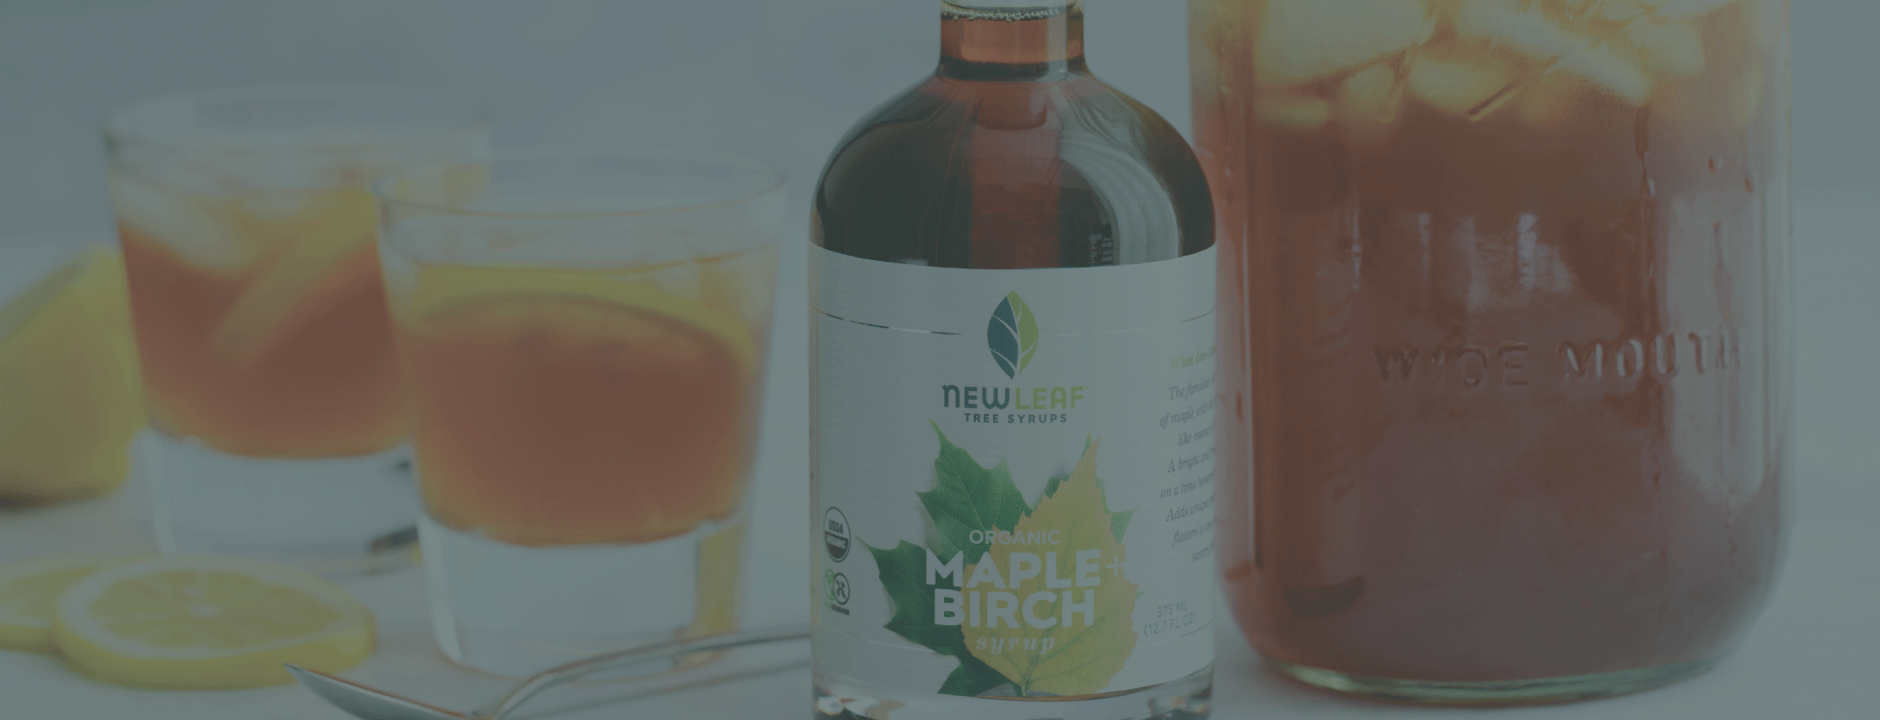 New Leaf Syrups